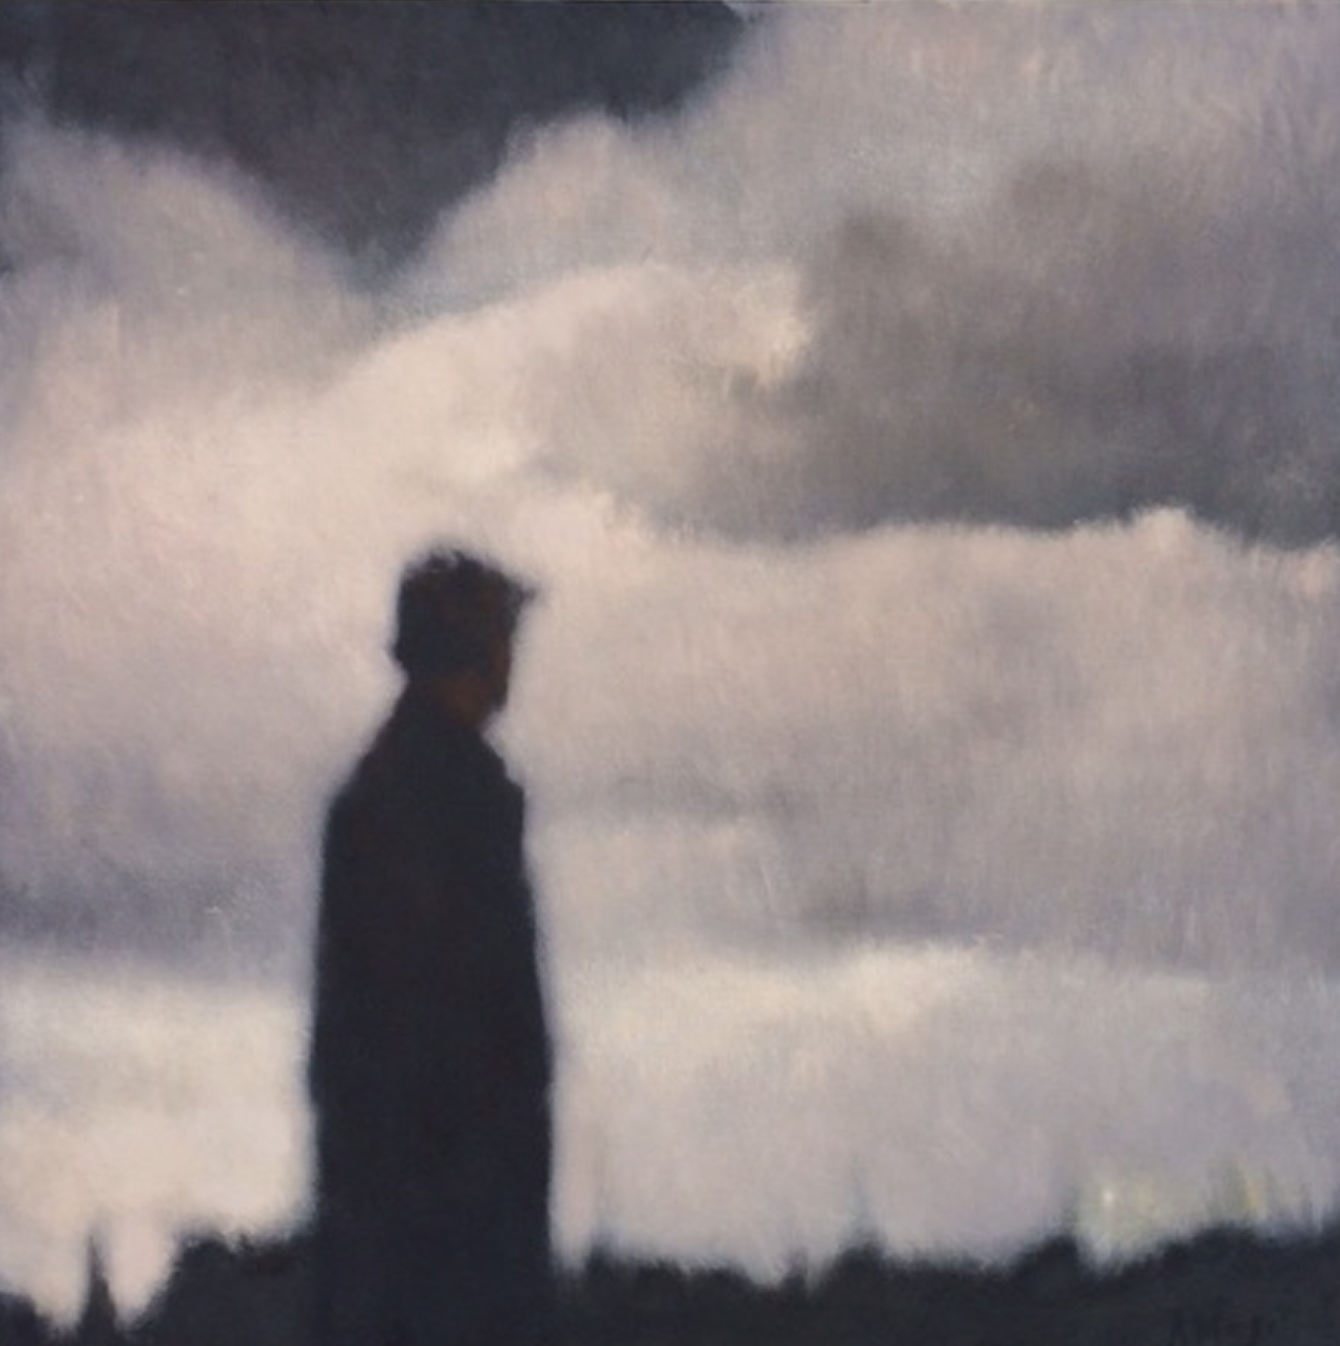 Artist: Anne Magill  Title: Dusk  Medium: Acrylic on canvas  Size: 100 x 100 cm  Price: £POA